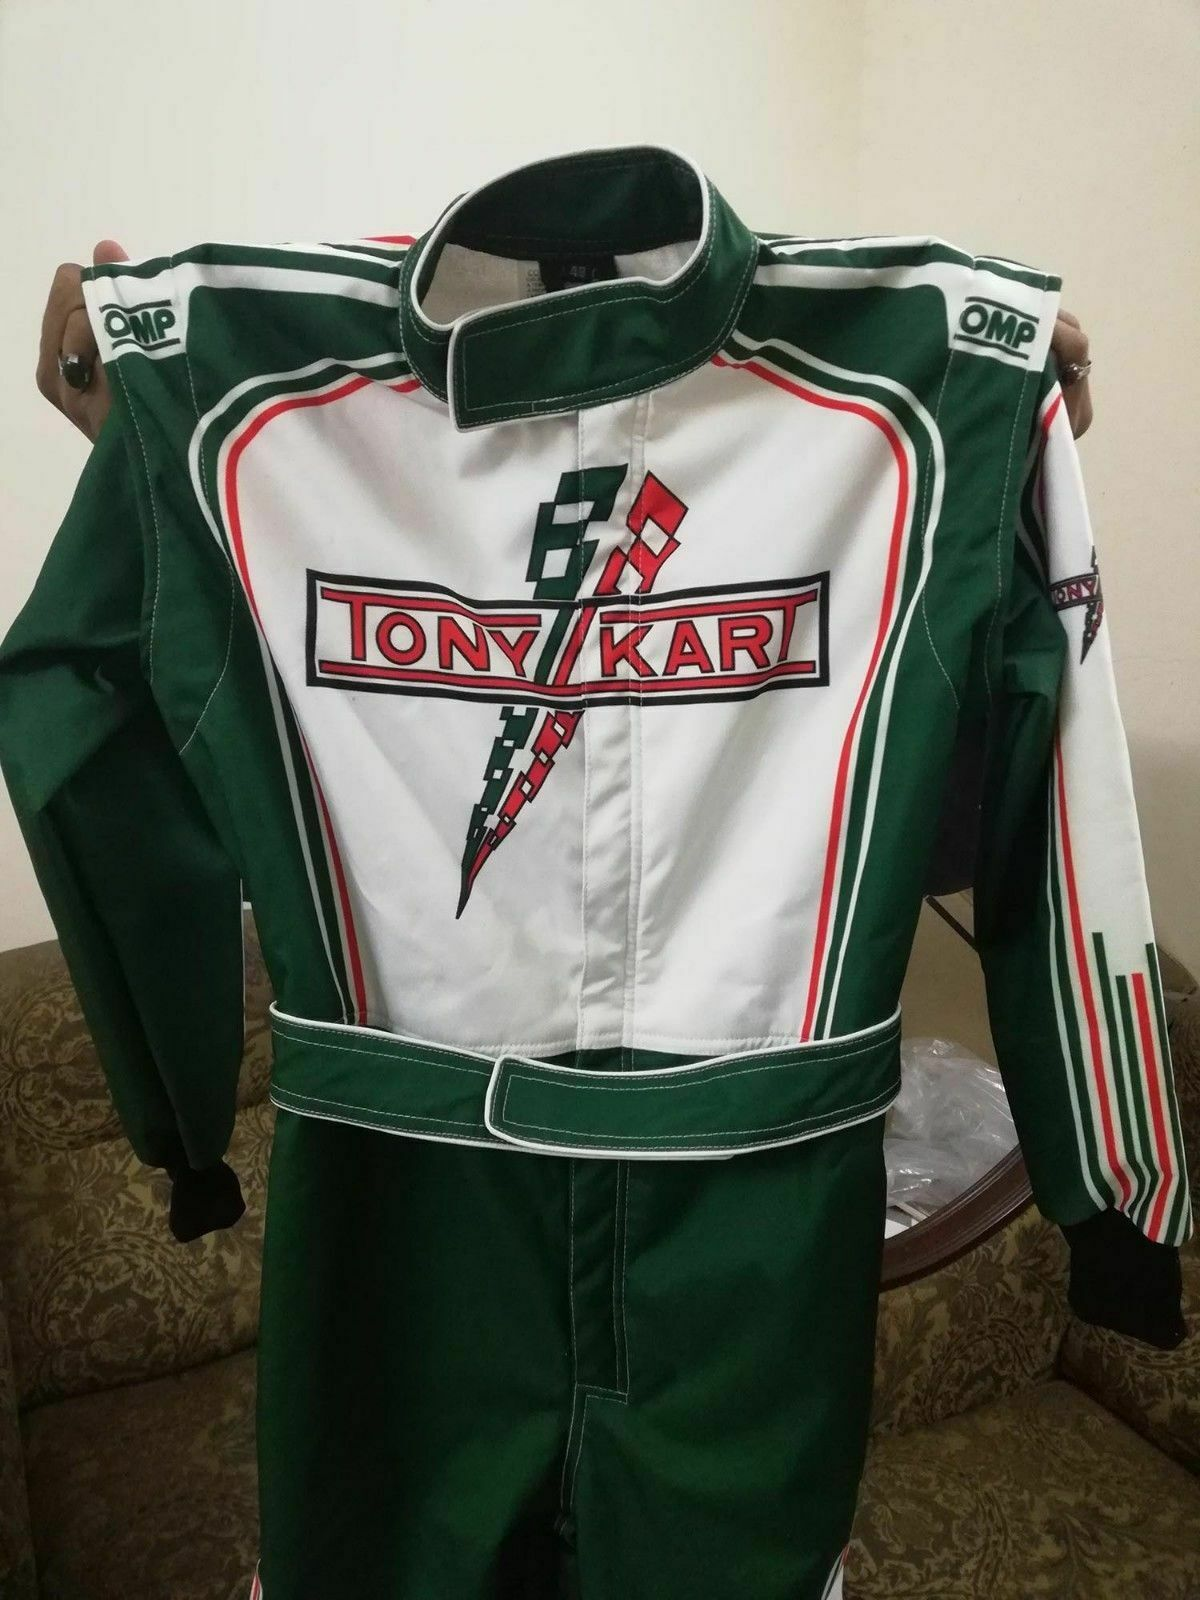 Tony Kart Sublimation print Go Kart Race Suit CIK FIA Level 2 Karting Suit